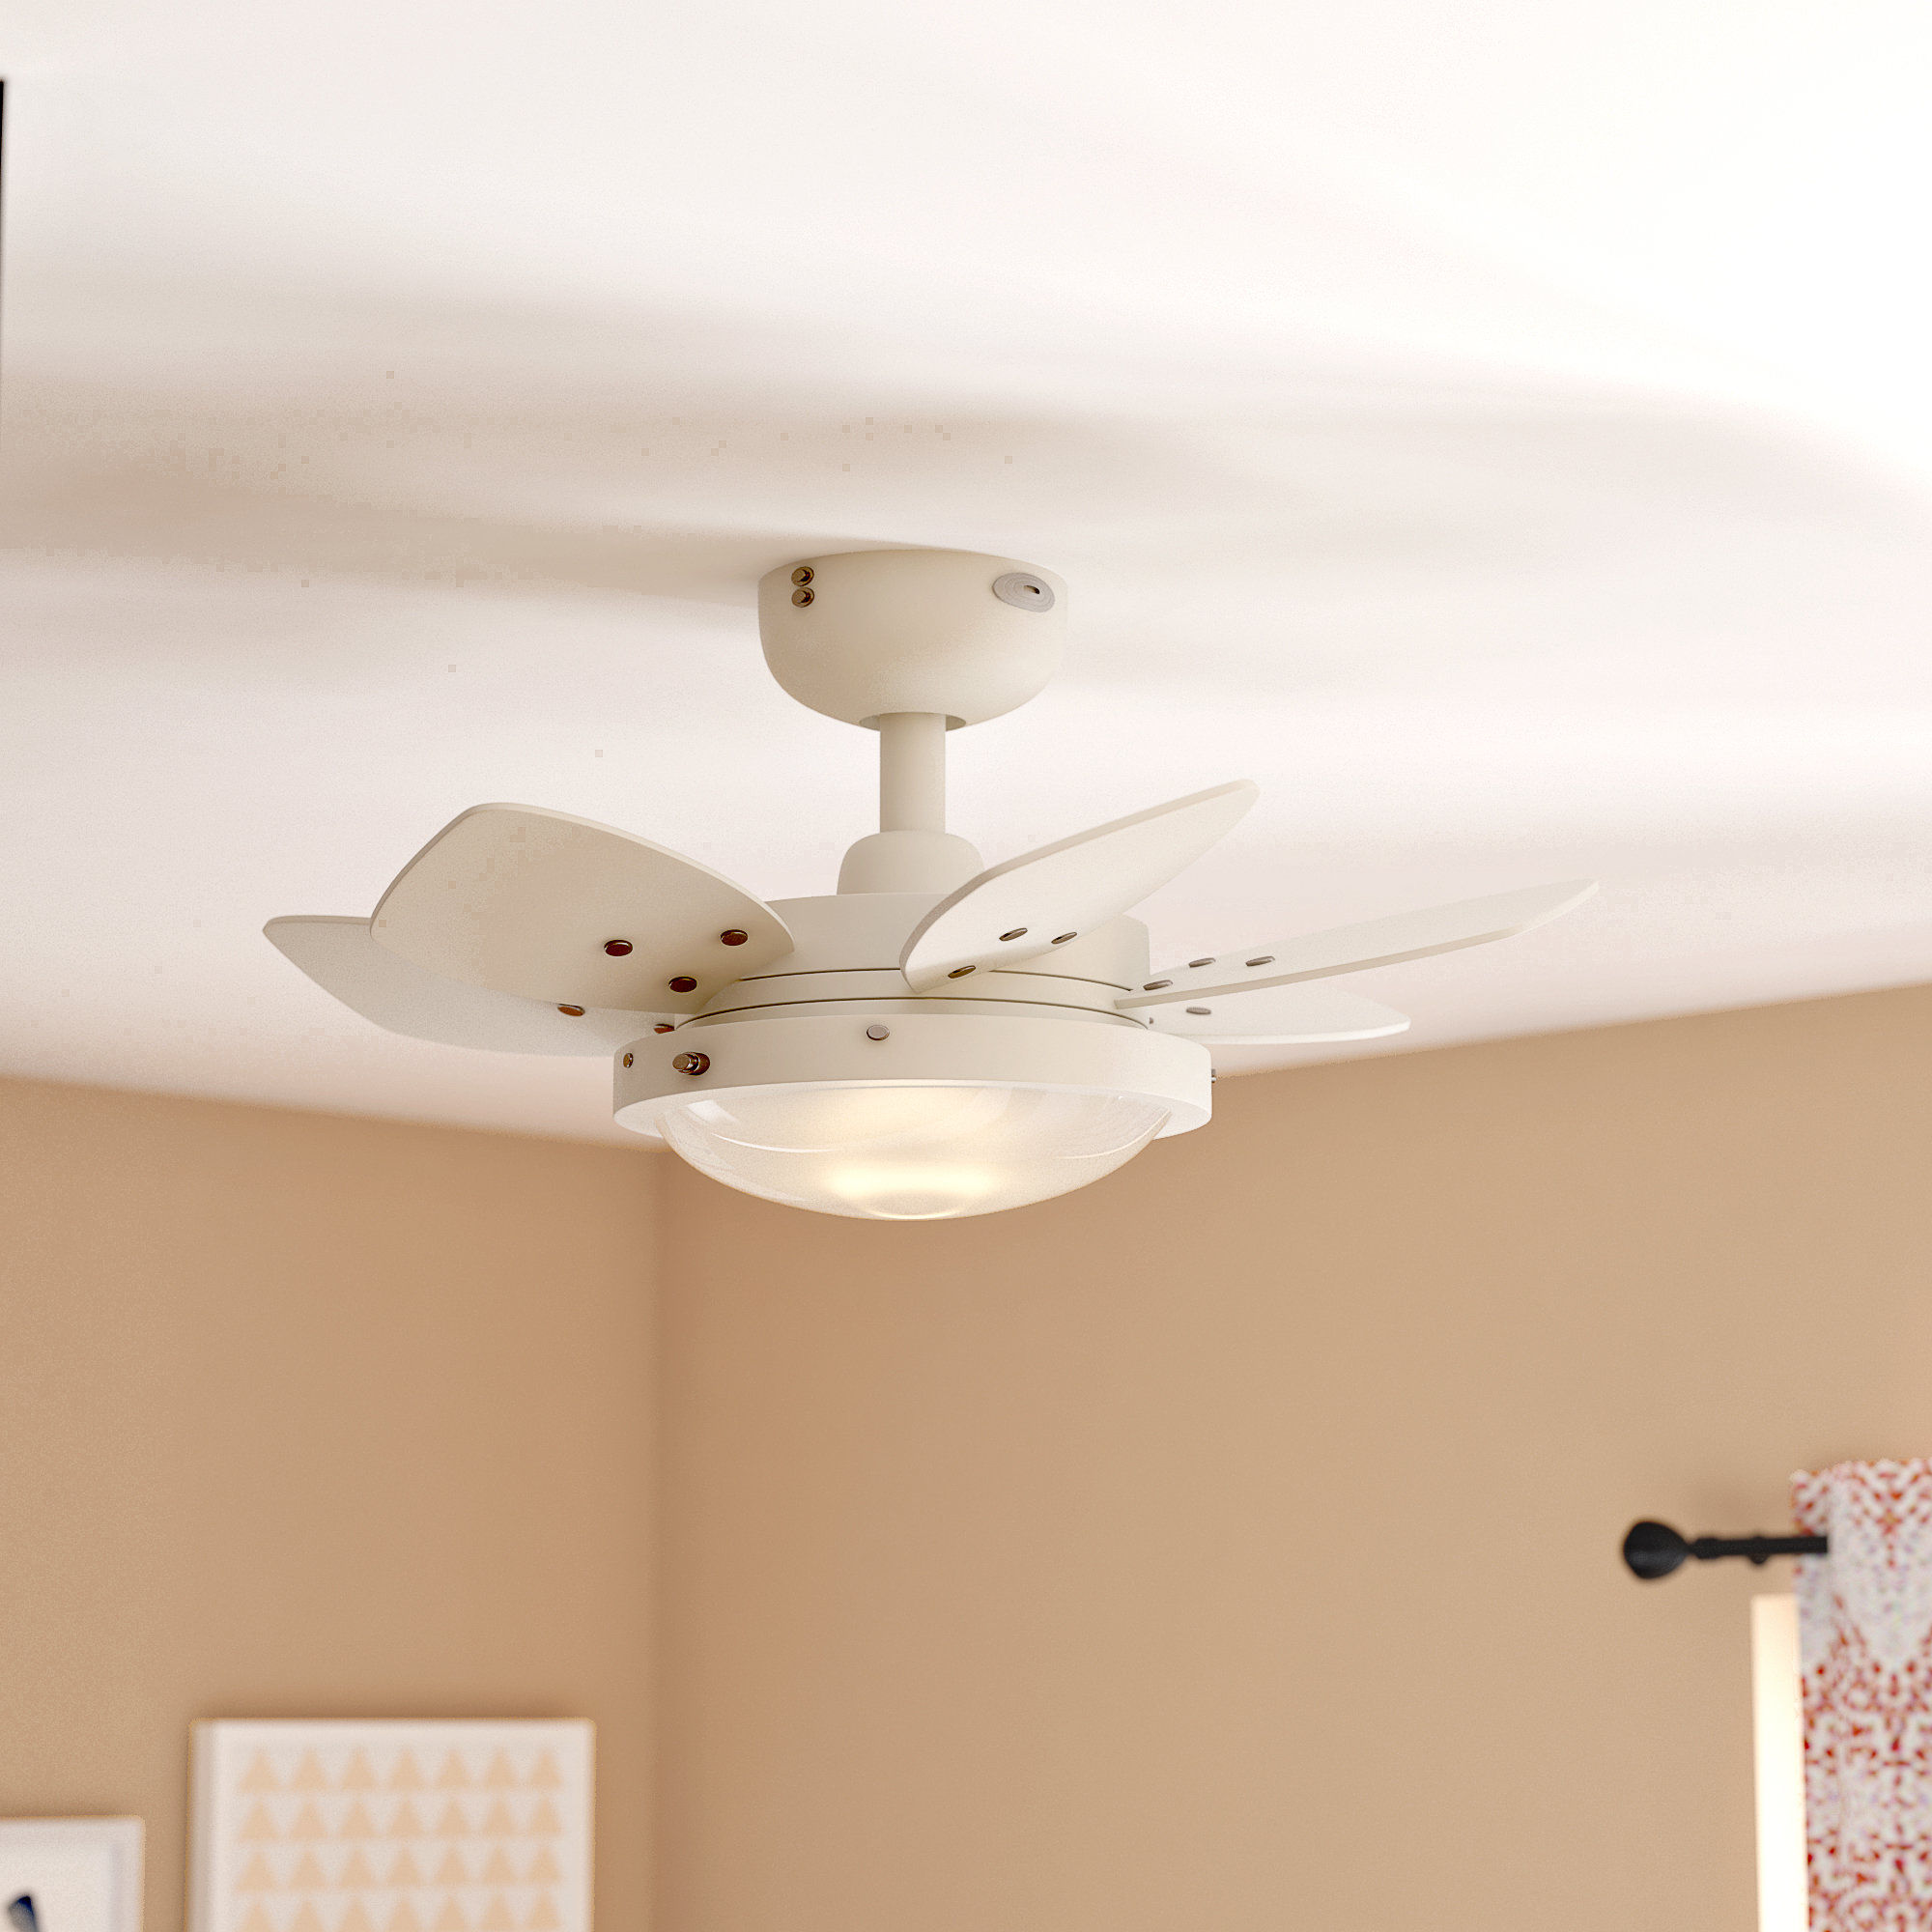 "24"" Chenut 6 Blade Ceiling Fan Light Kit Included With Regard To Well Known Corry 6 Blade Ceiling Fans (View 1 of 20)"